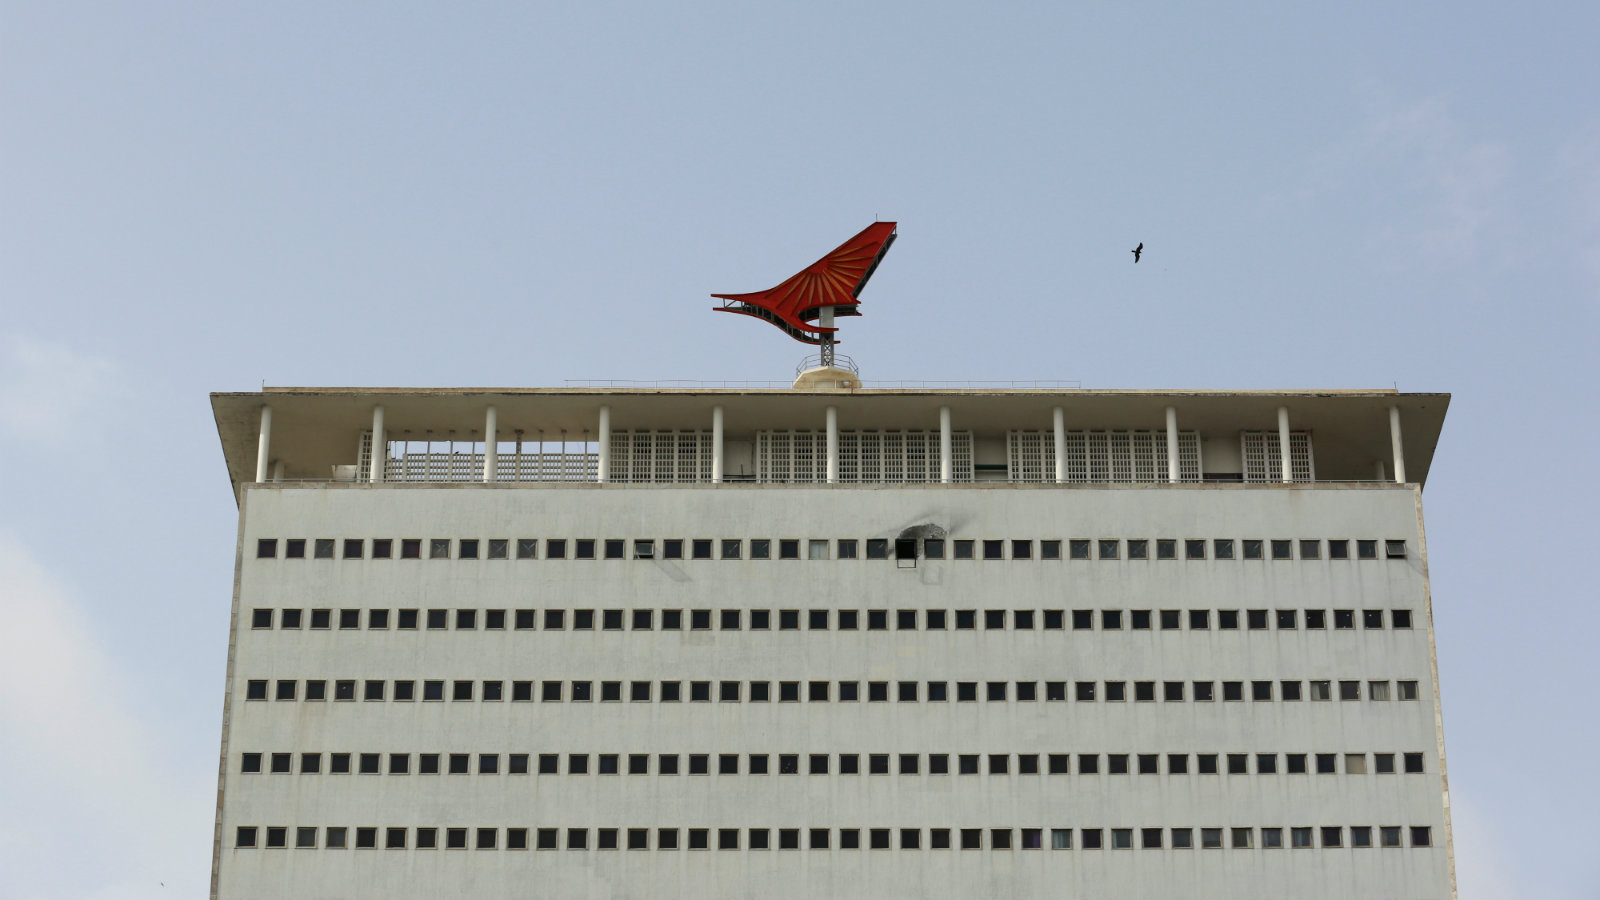 The Air India logo is seen on top of its office building in Mumbai, India, July 7, 2017. Picture taken July 7, 2017. To match Analysis AIR INDIA-PRIVATISATION/